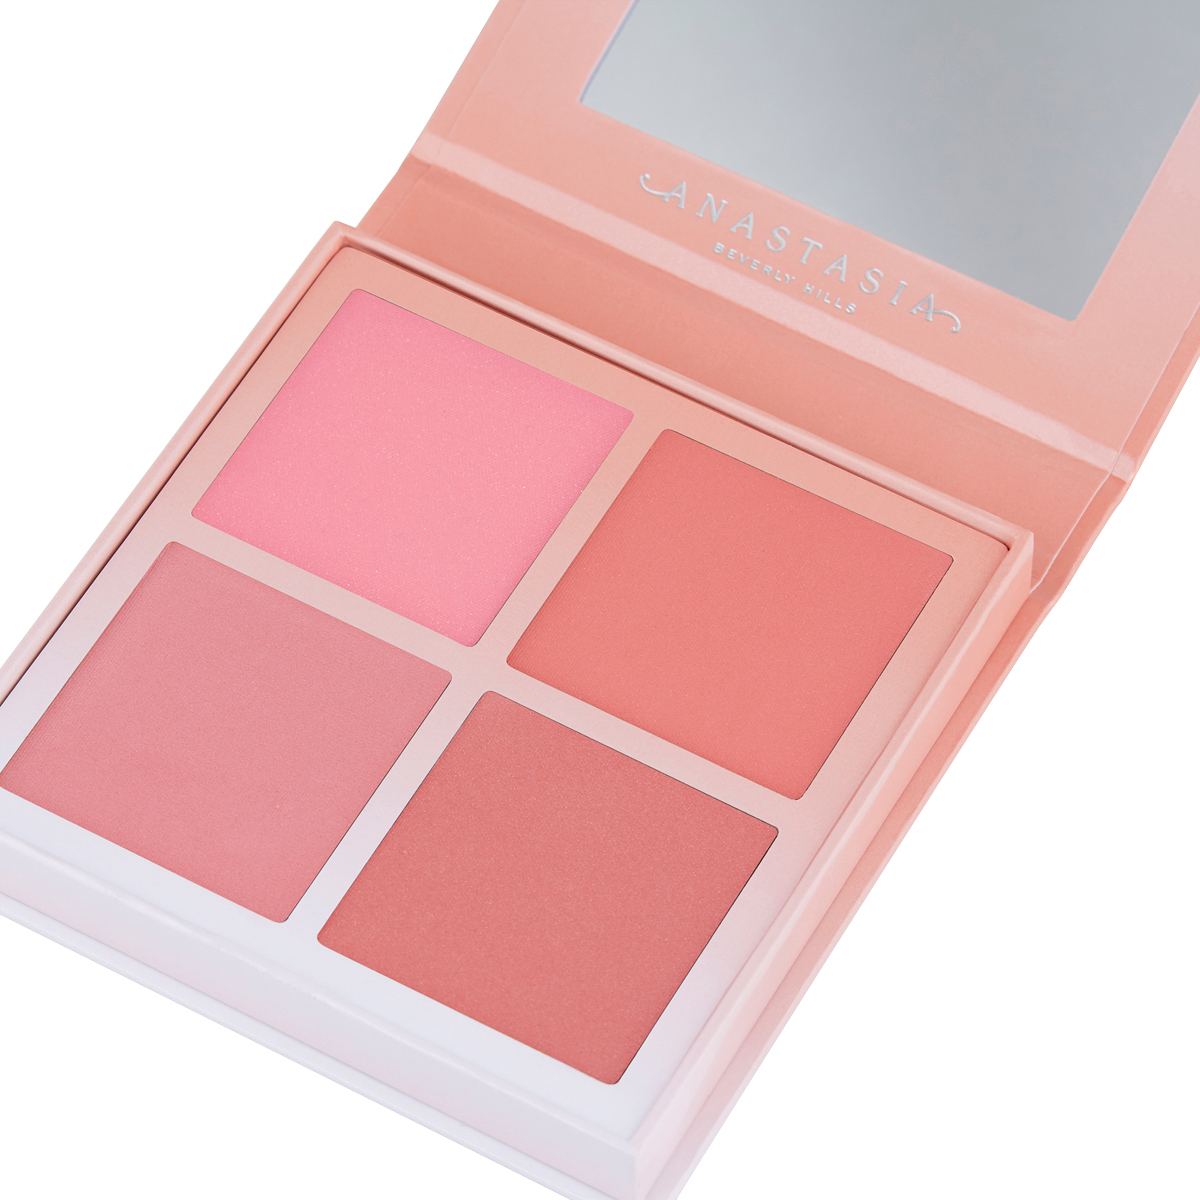 Holiday Blush Kits - Radiant